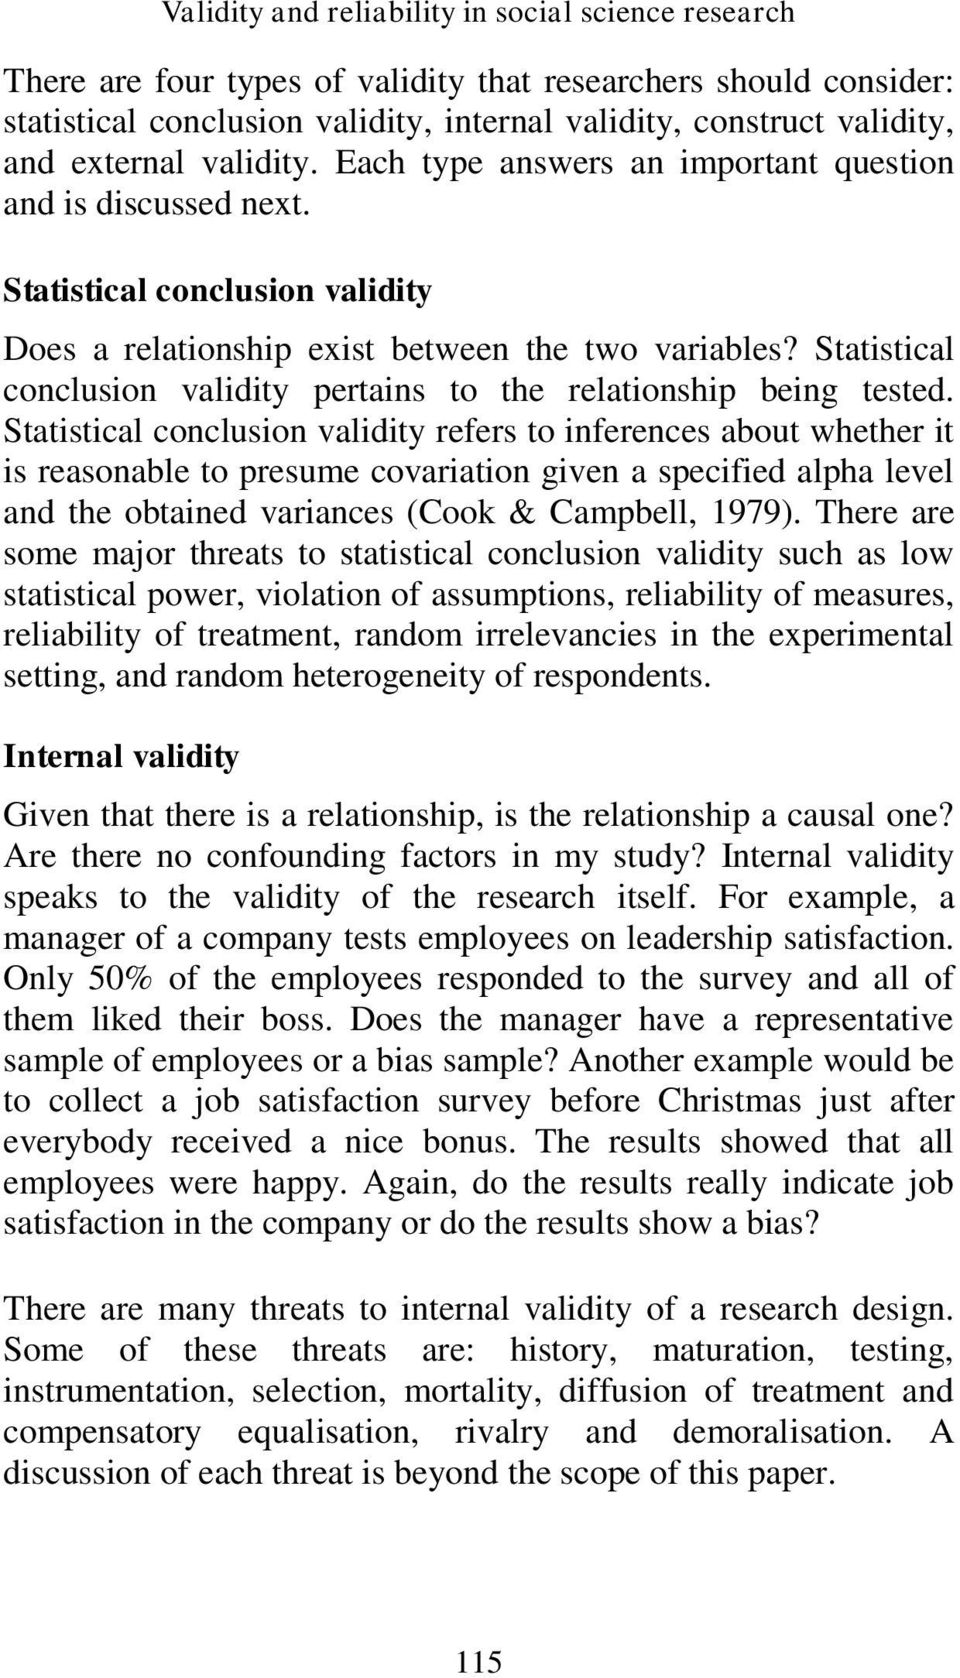 Statistical conclusion validity pertains to the relationship being tested.